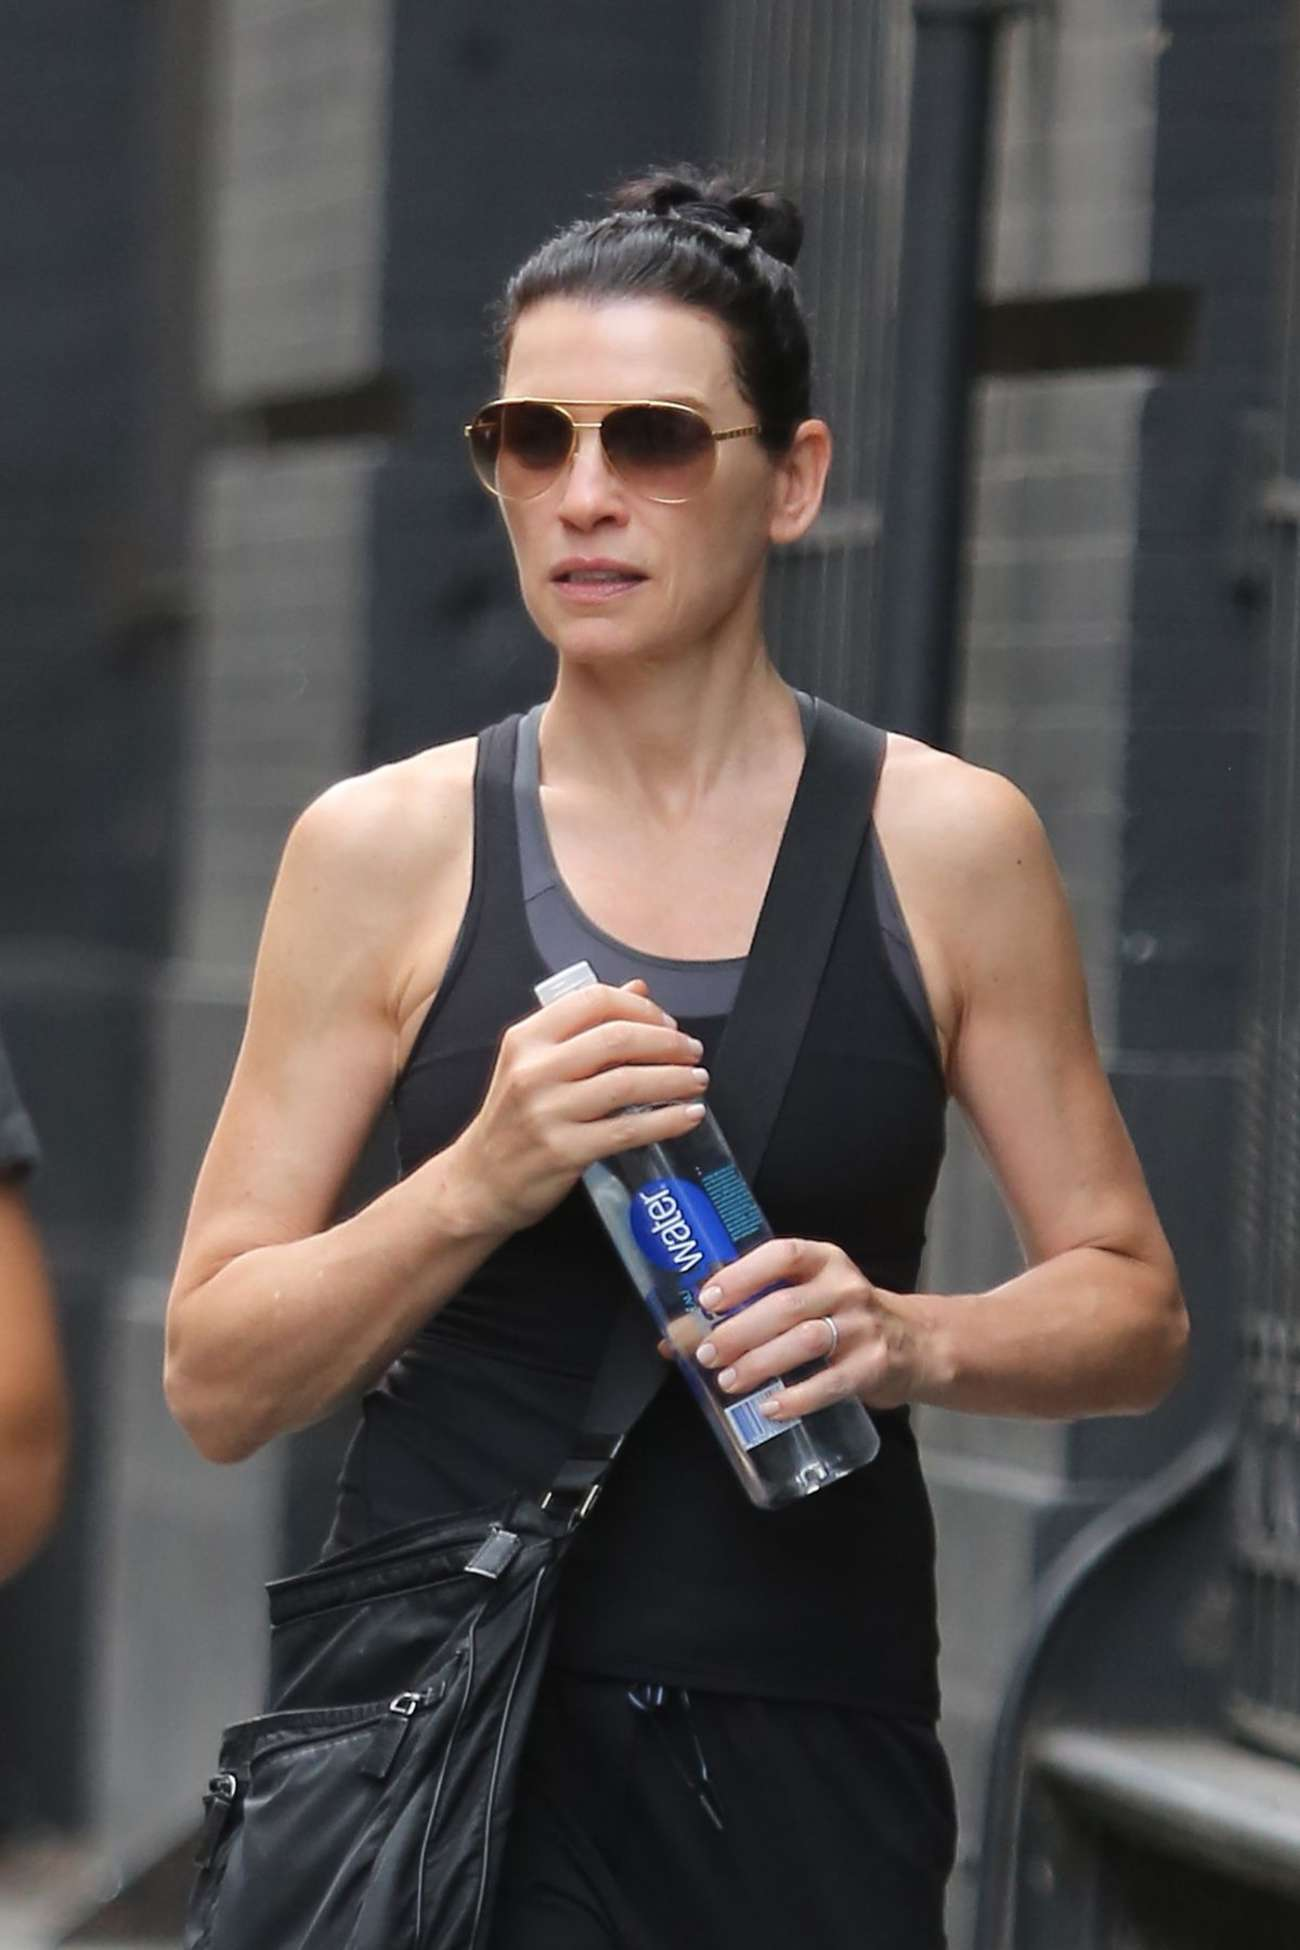 Julianna Margulies Heading to the gym in New York